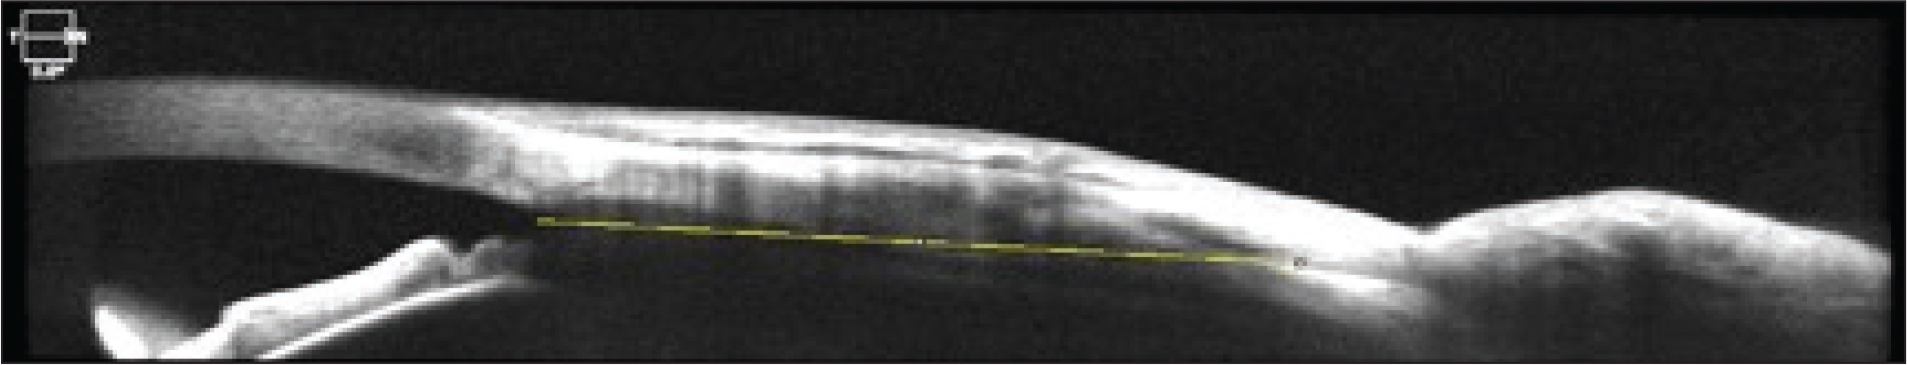 Optical coherence tomography image. The measurement is marked with a line from anterior angle to muscle insertion.